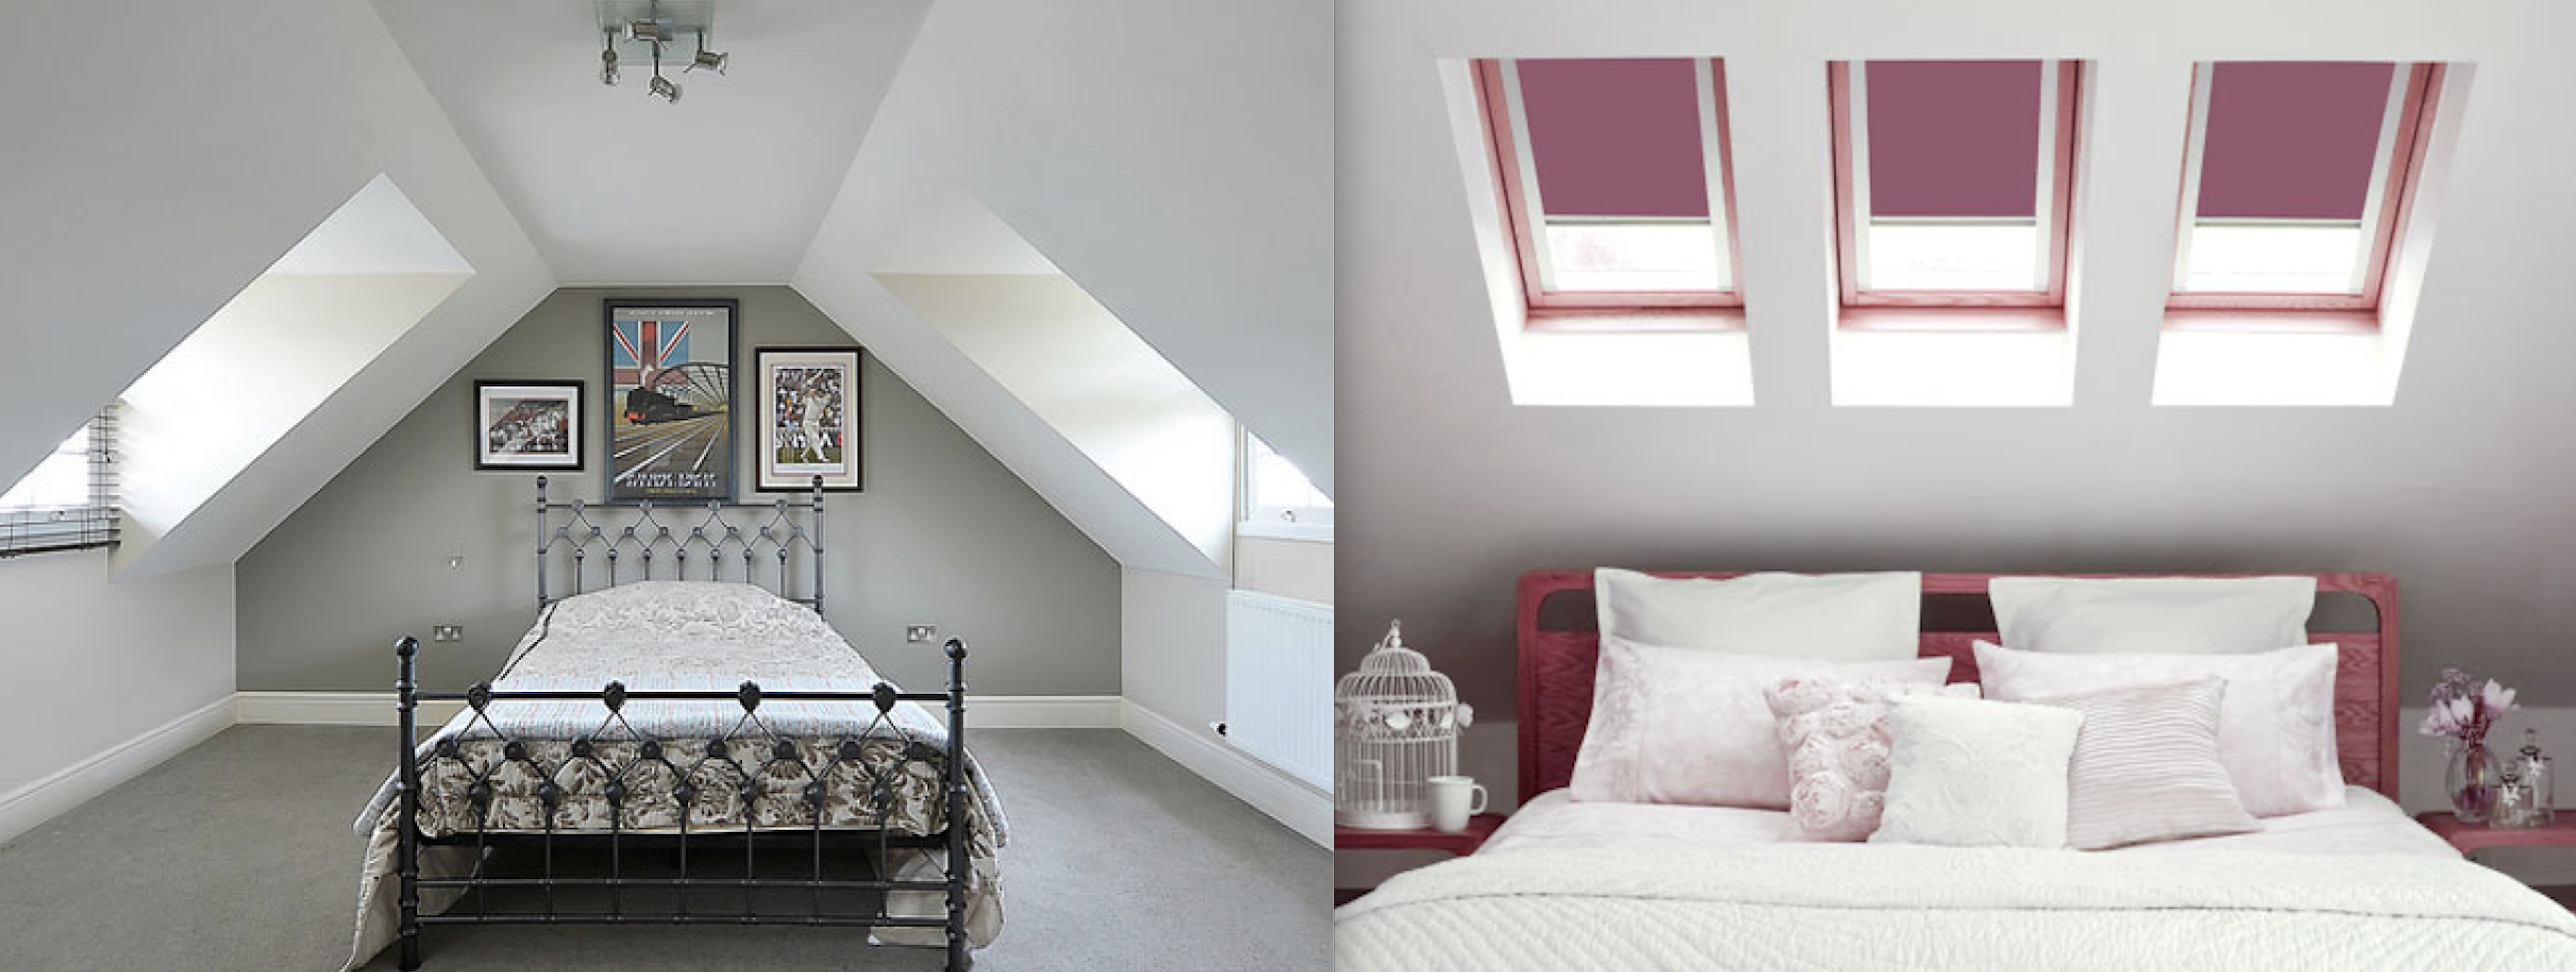 Beautiful Dormer loft conversion in Prestwich, creating a new master bedroom with private bathroom, walk in wardrobe and stunning new oak staircase with Velux polyurethane SK06 GPU windows.